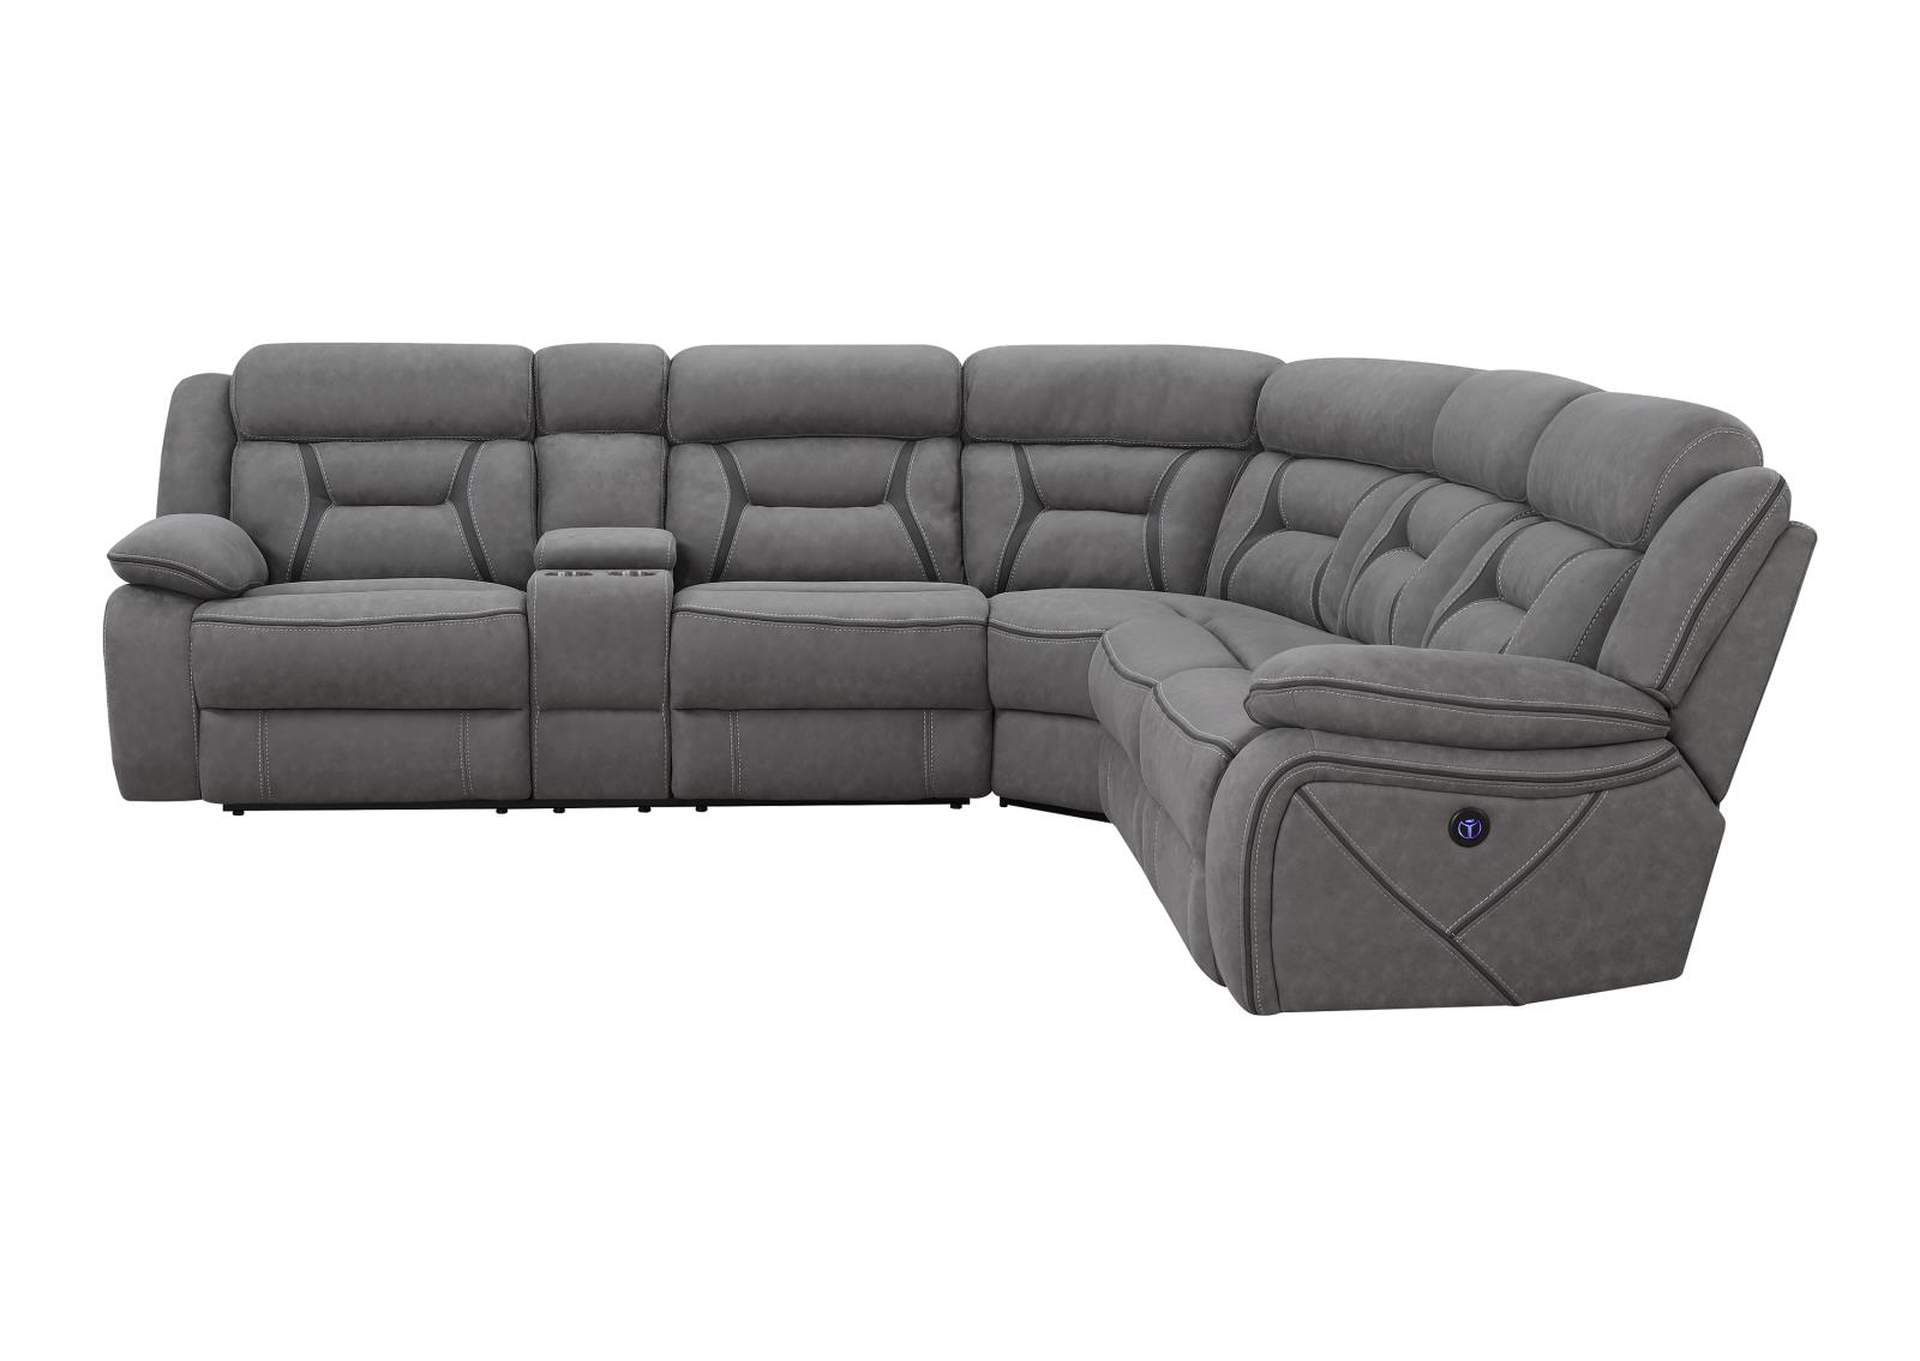 Dove Gray Camargue Casual Grey Motion Sectional,Coaster Furniture